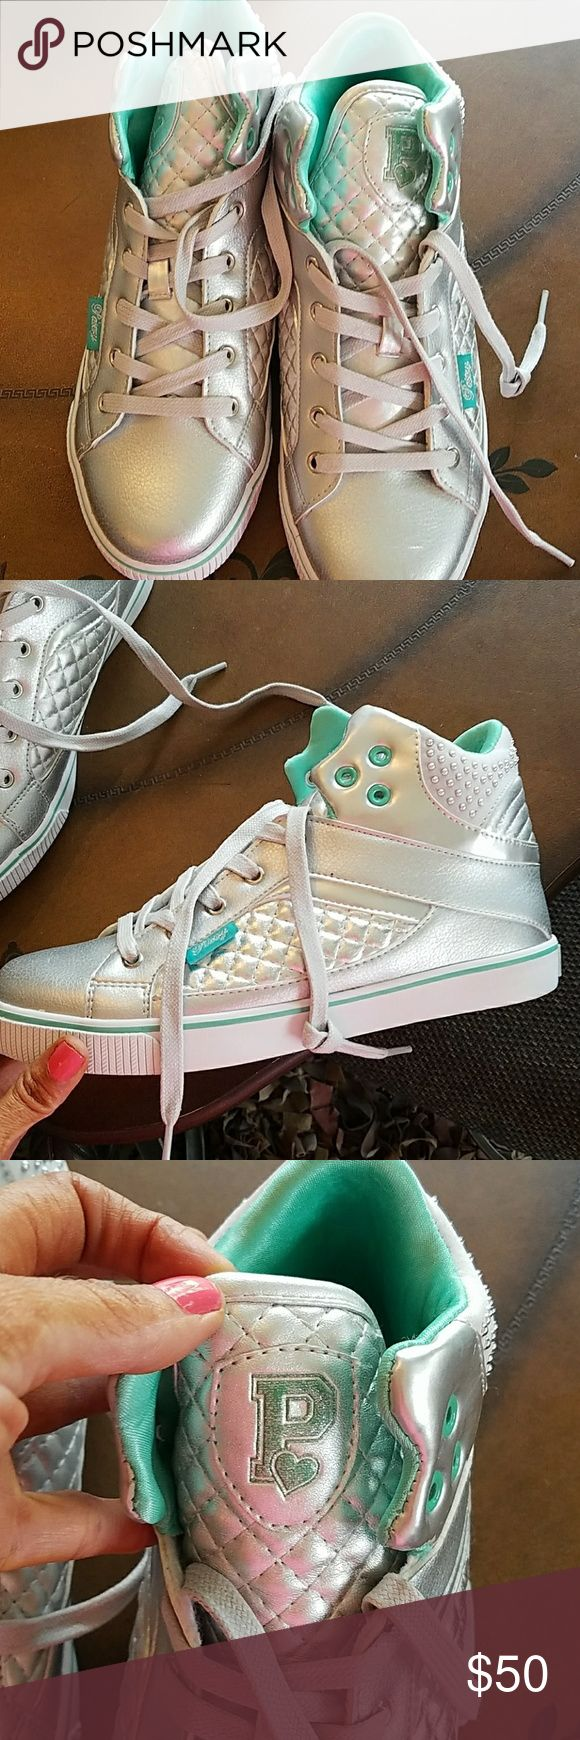 💖Brand new stylish kicks!!! 💖Silver shiny tennis shoes made for fun and not exercise!!! These will look great with leggings or jeans or shorts. Very different!!! SO CUTE!!!❣❣❣ love pastry Shoes Athletic Shoes